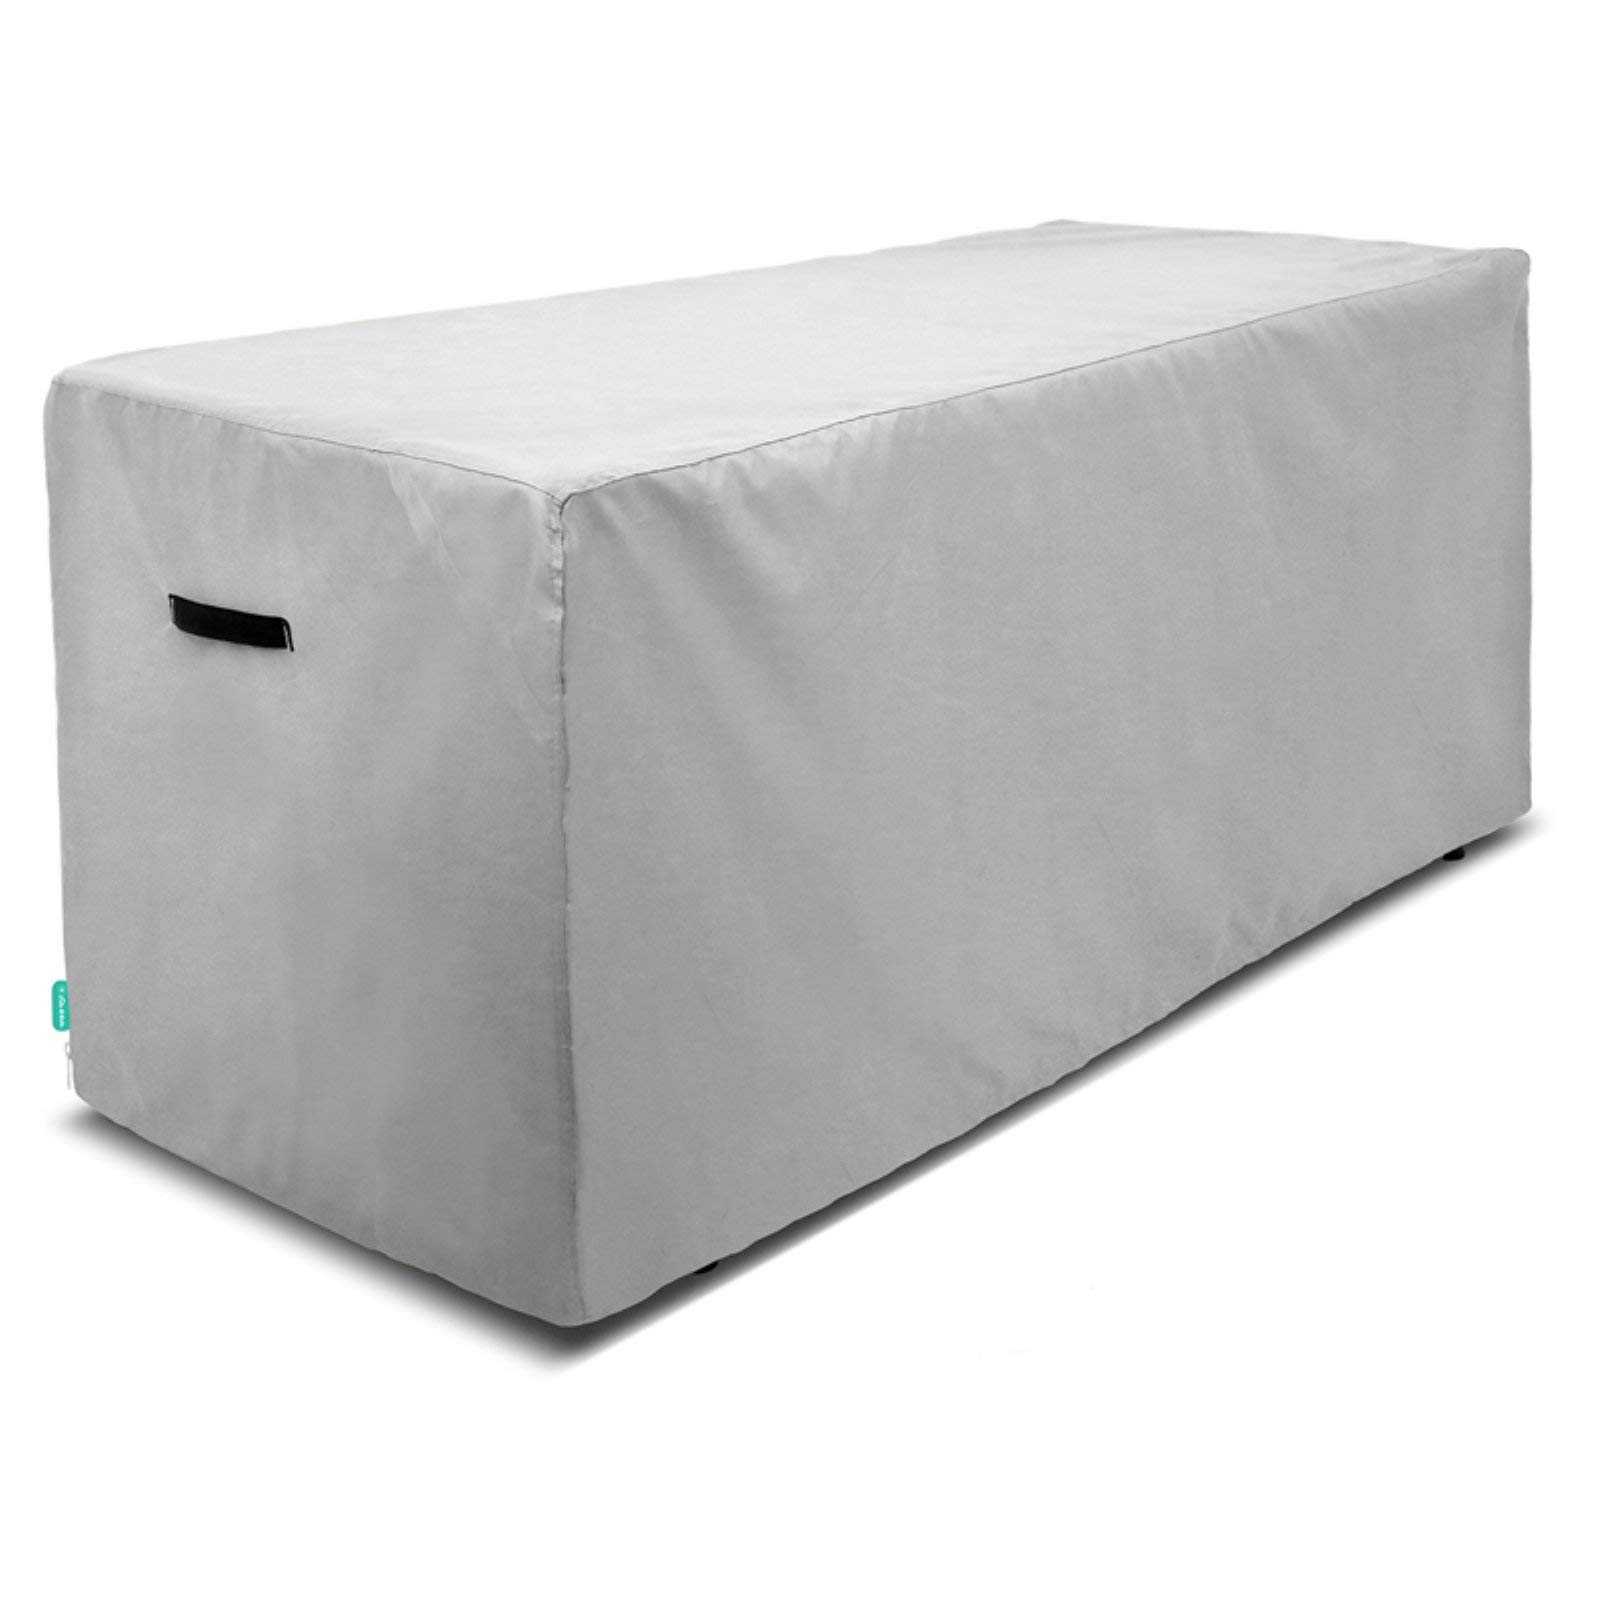 OKSLO Universal outdoor ufcoz443222pt patio rectangular ottoman cover